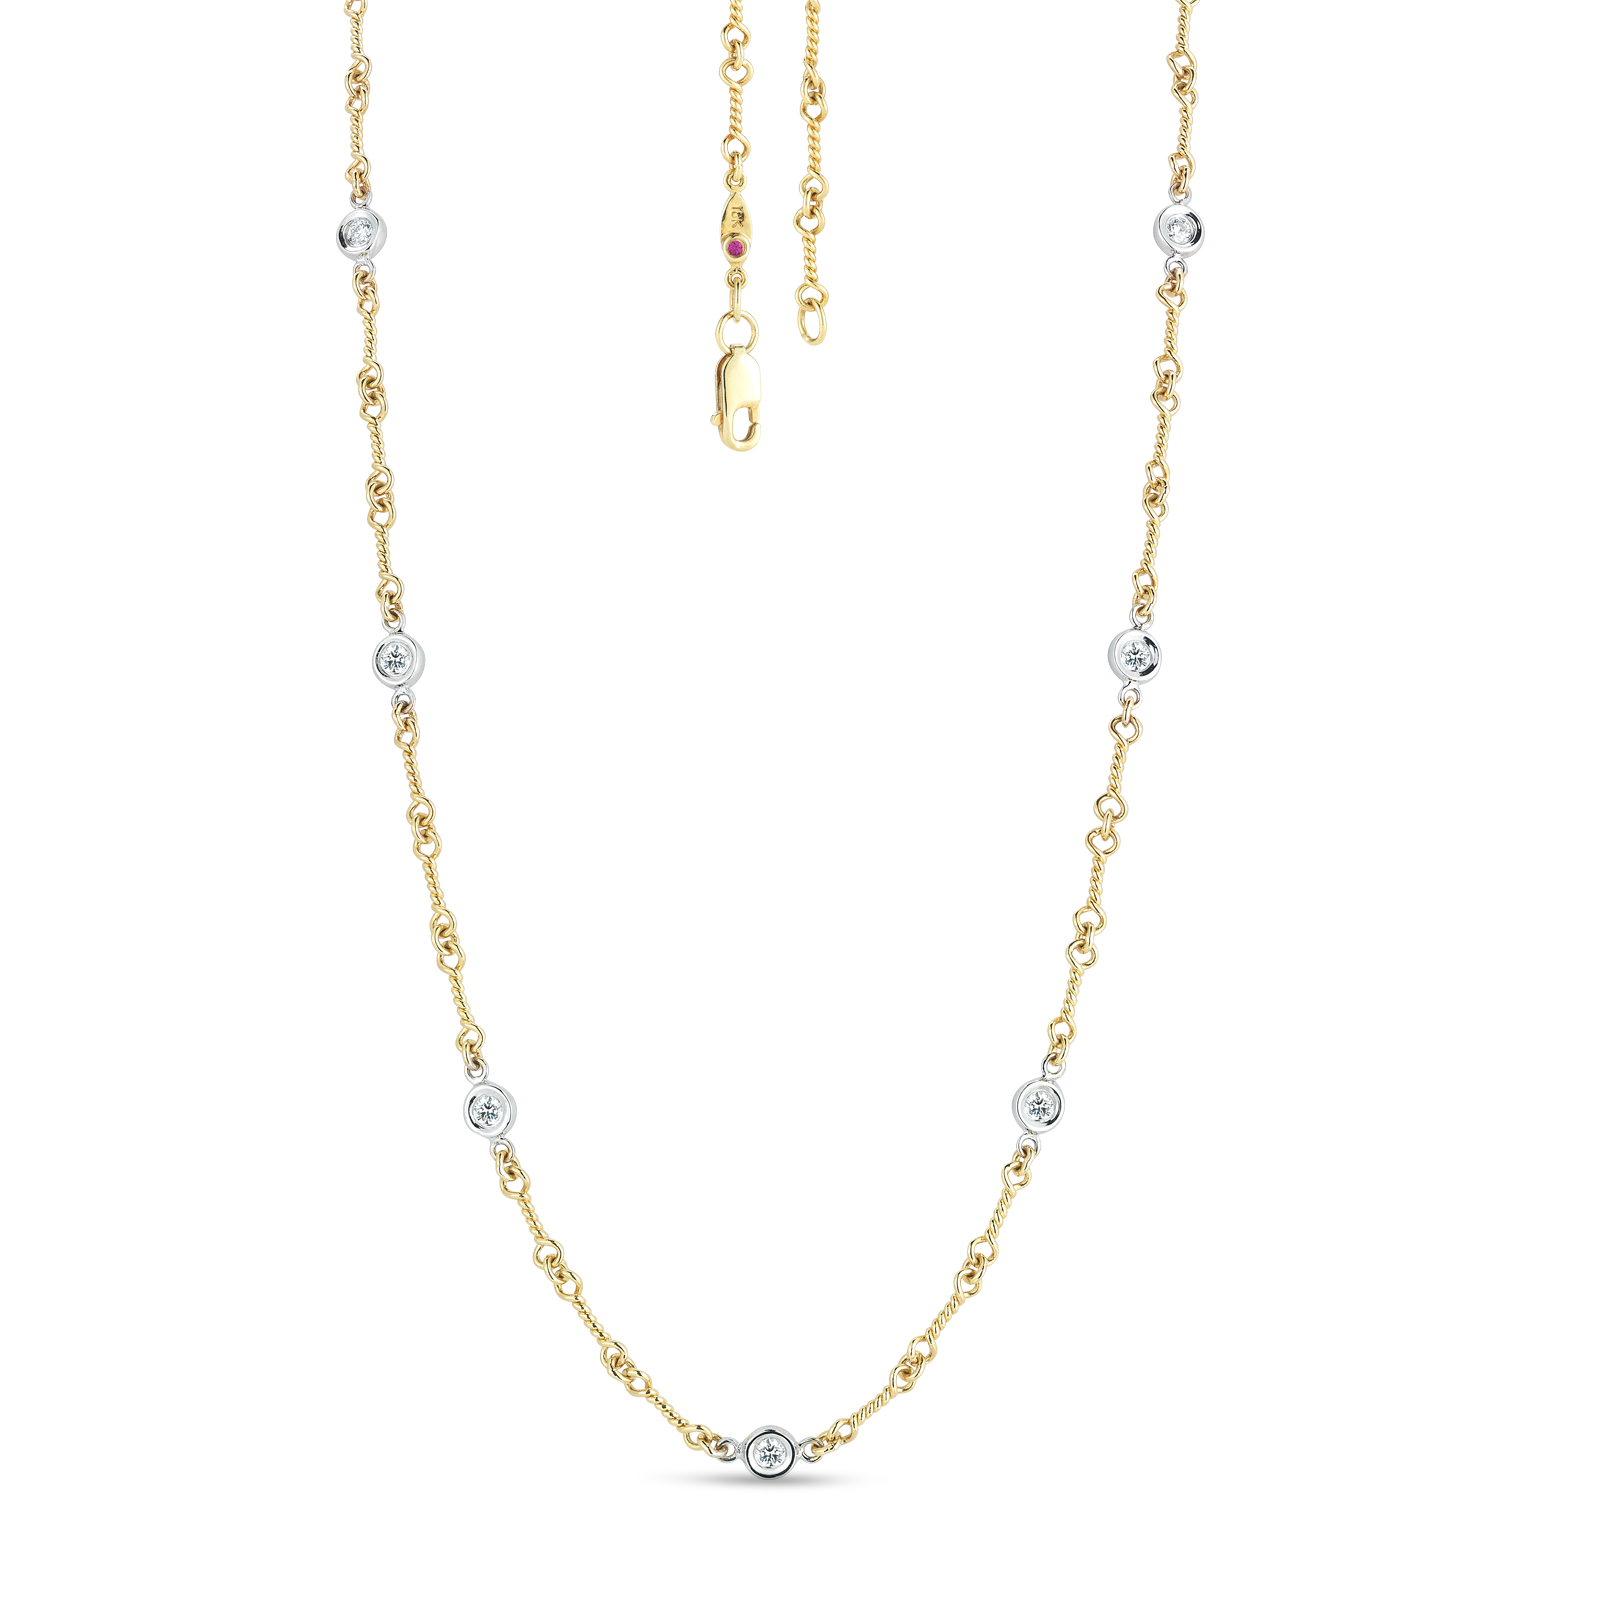 18K Yellow Gold Dogbone 7 Station Necklace With Diamonds